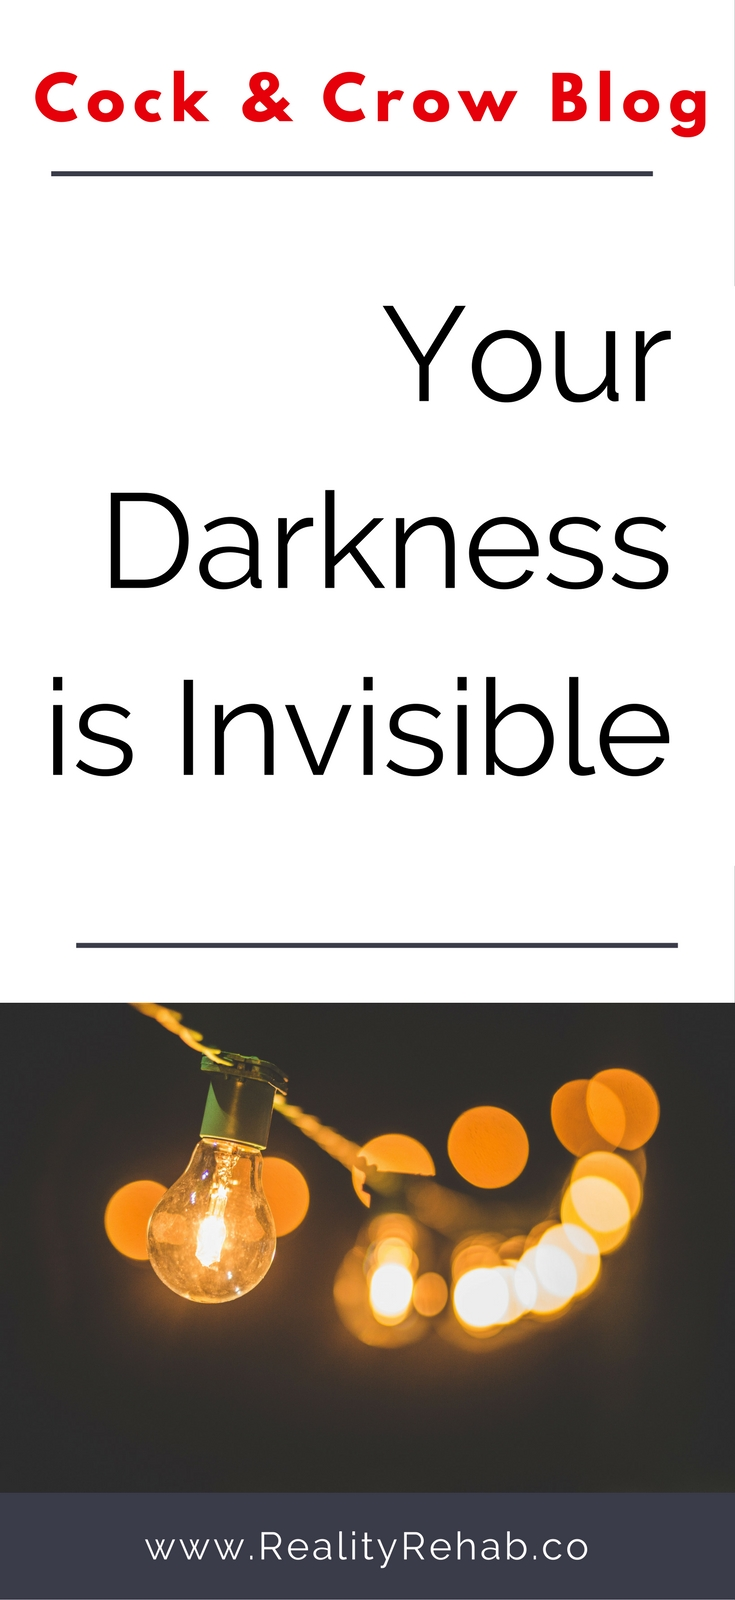 Your Darkness is Invisible | Cock & Crow Blog | #depression #blog #writing #yoga